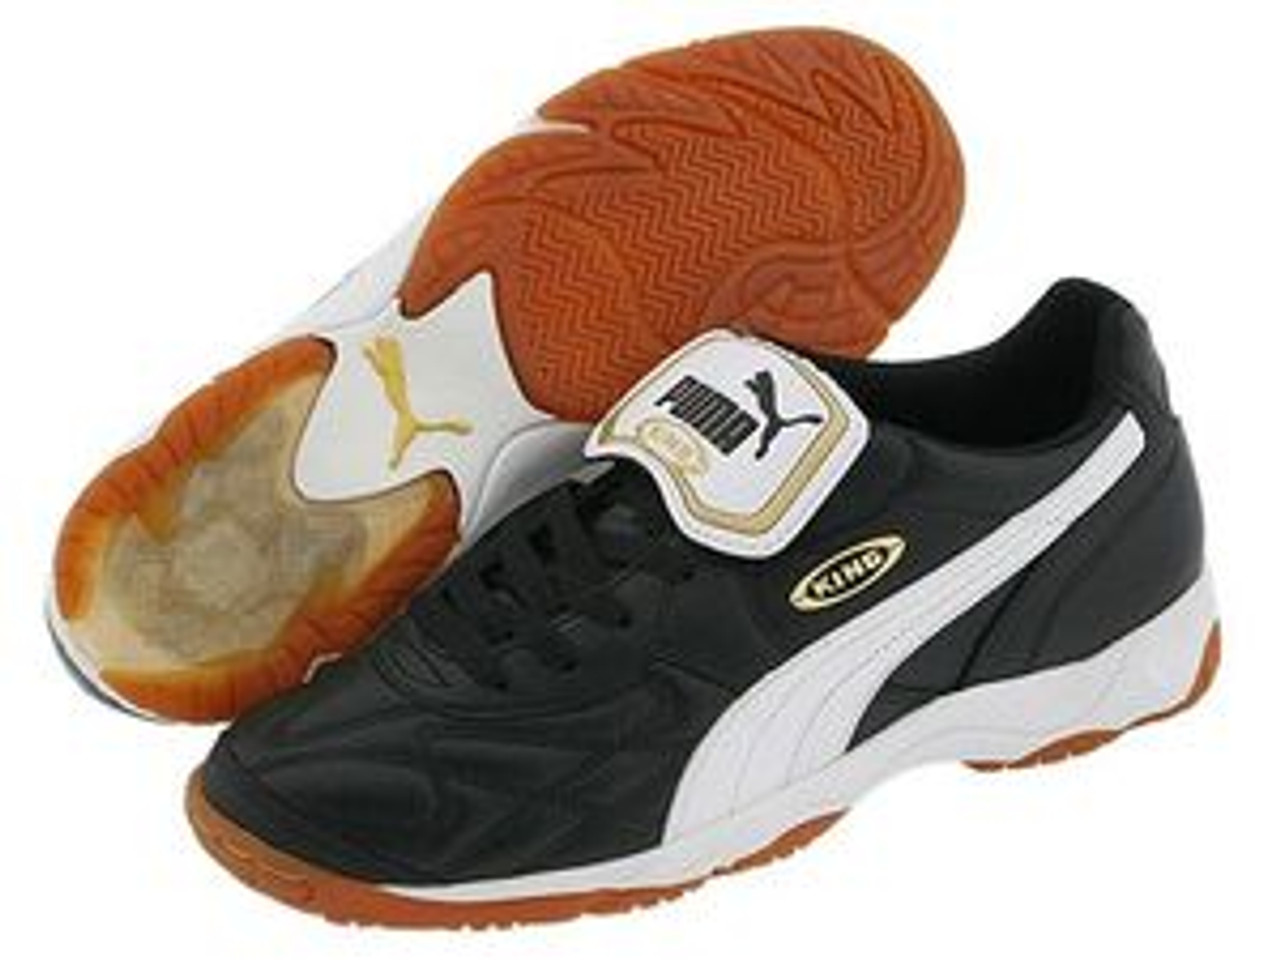 PUMA KING ALLROUND INDOOR LEATHER SHOES